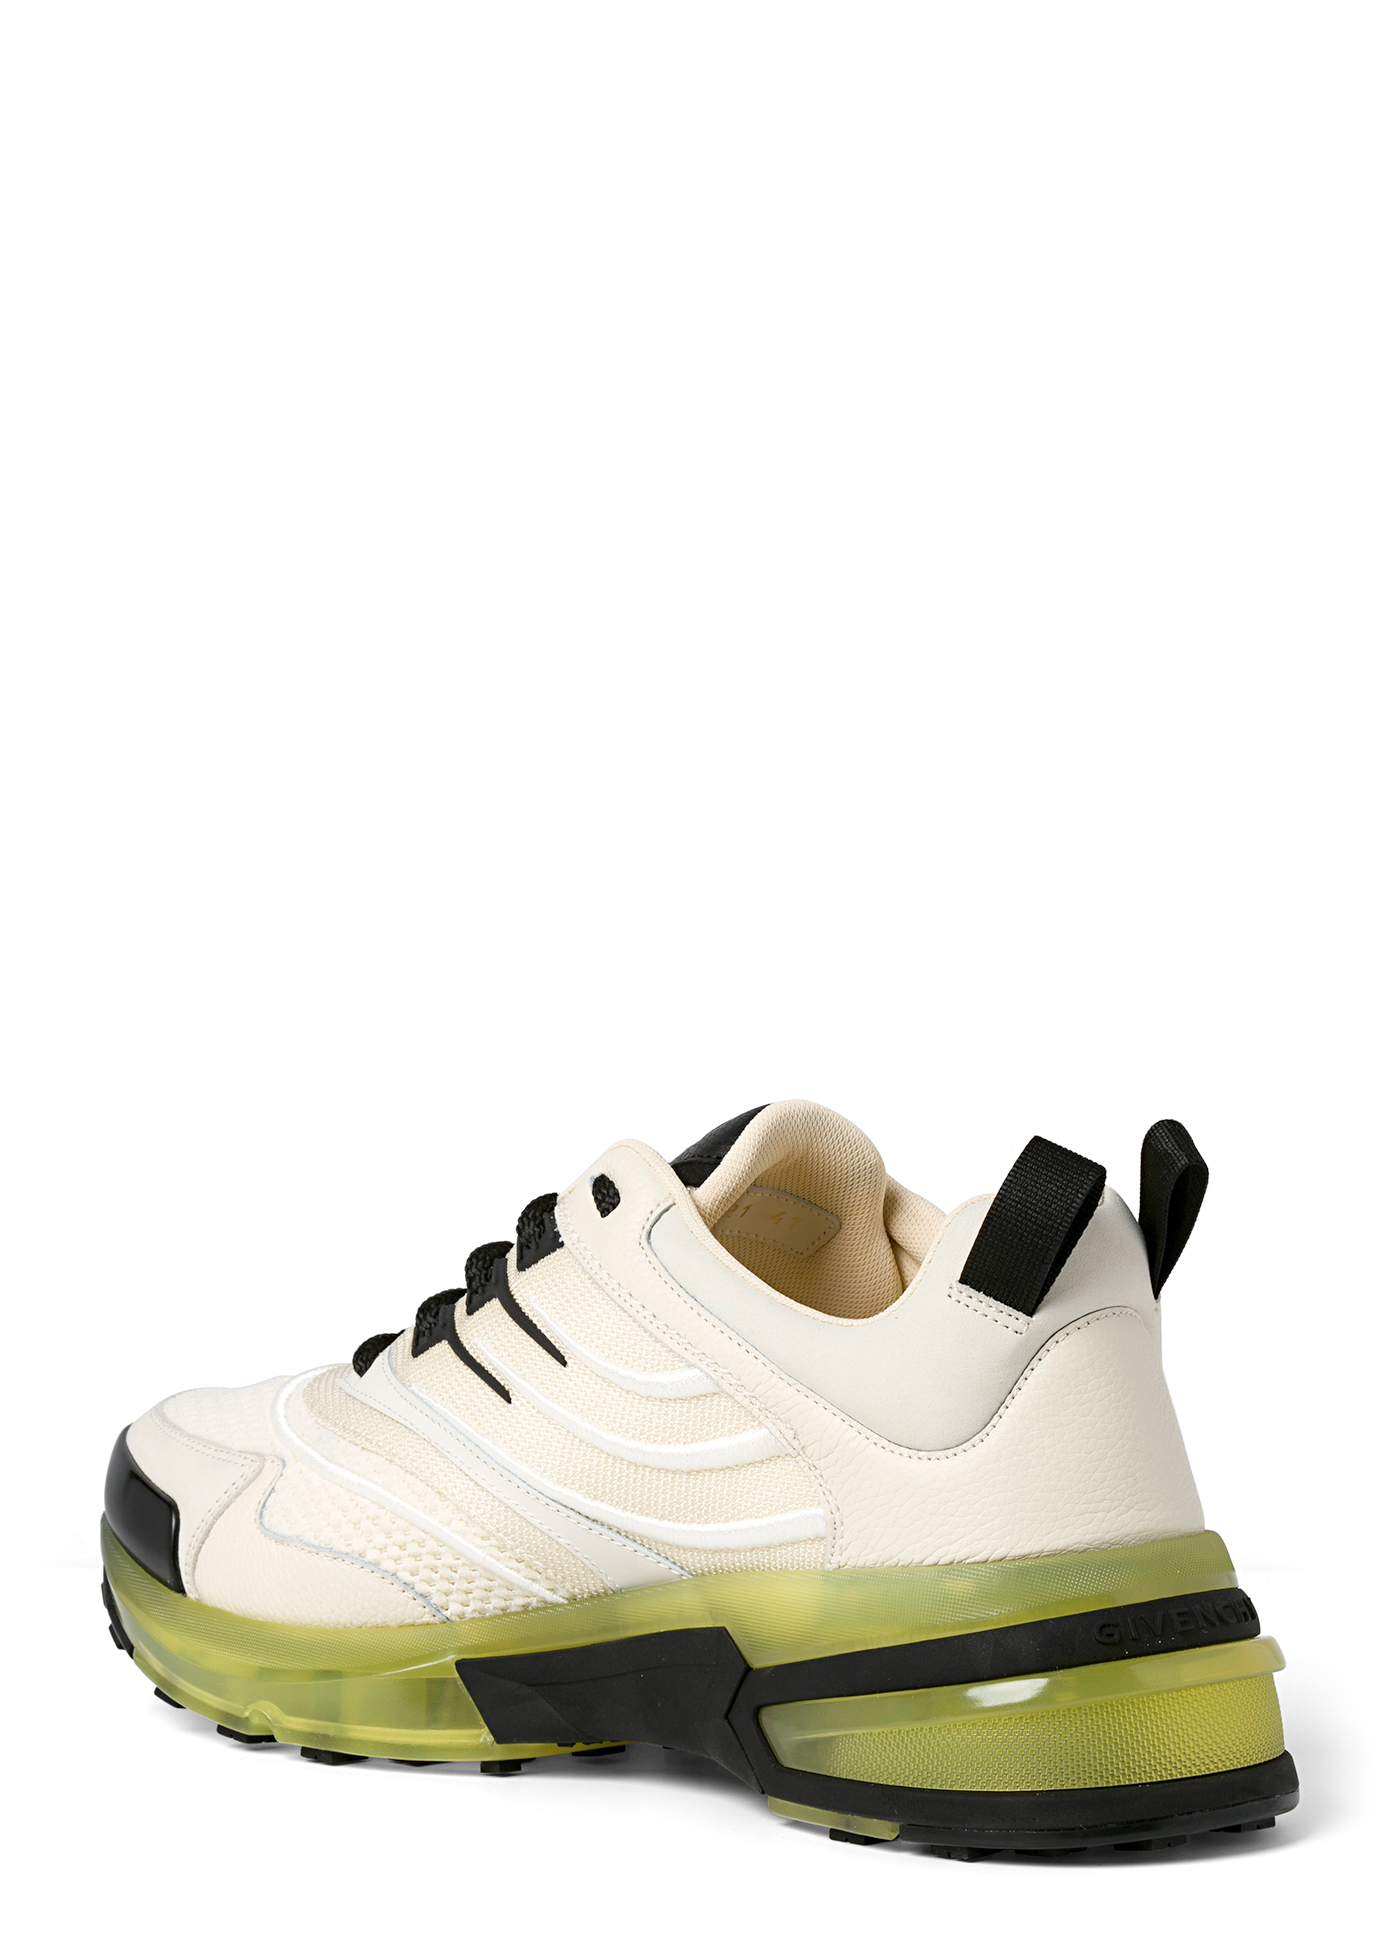 GIV 1 SNEAKERS image number 2